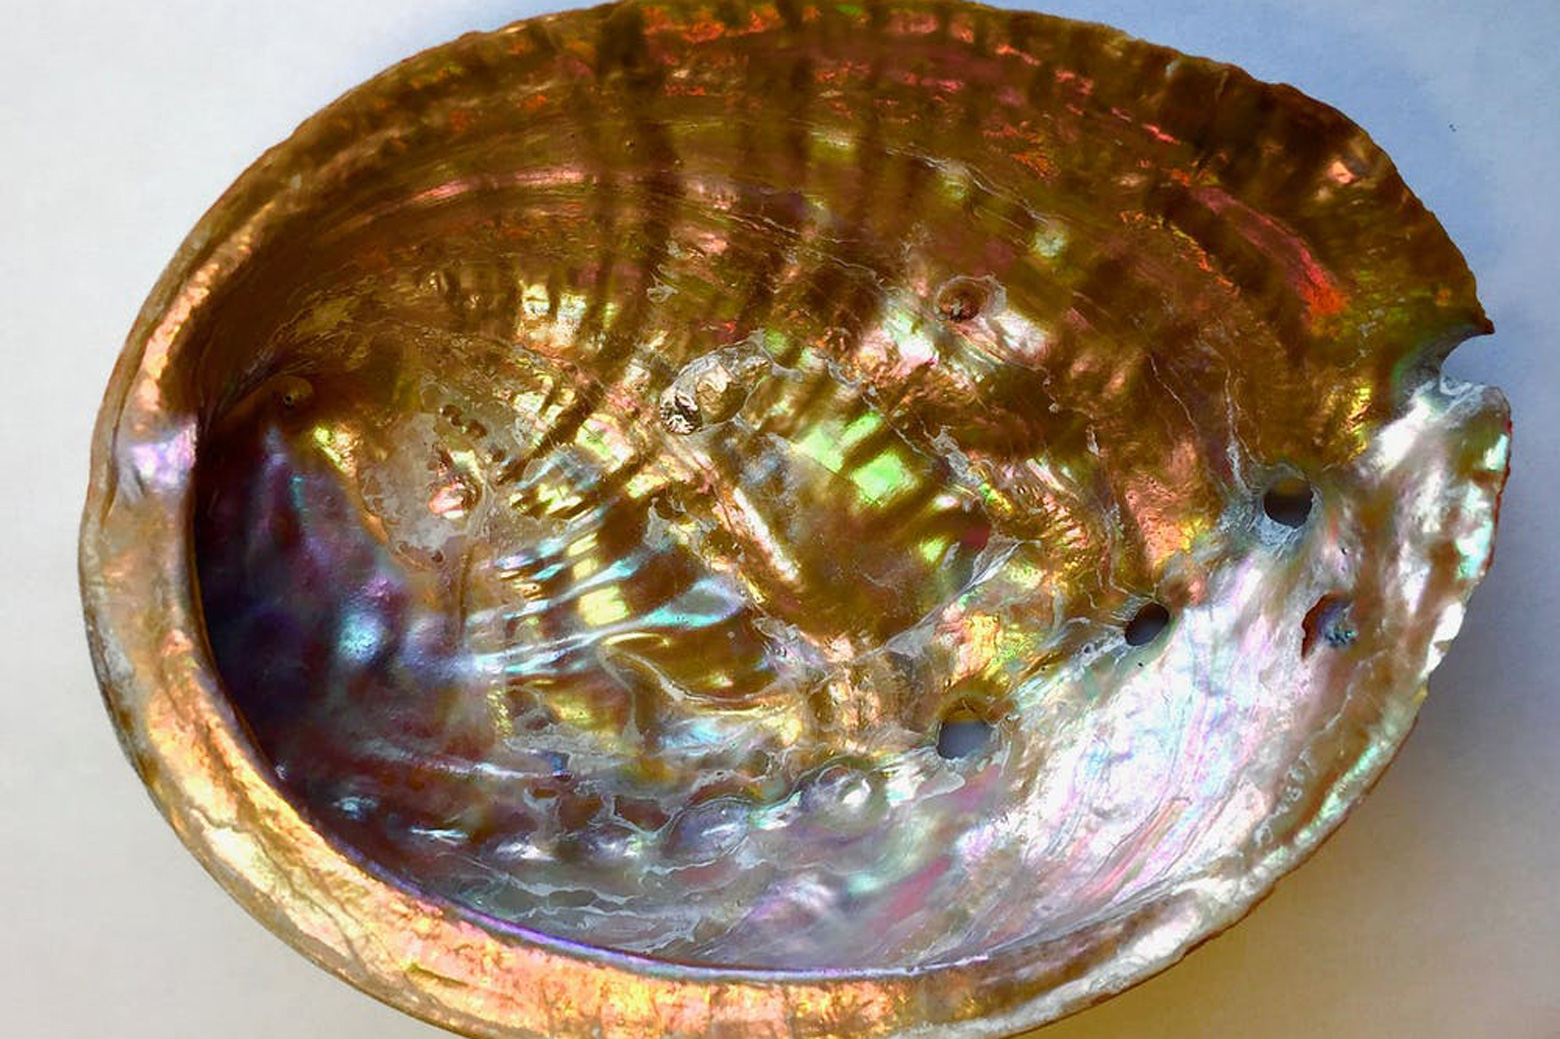 Inside of an abalone shell